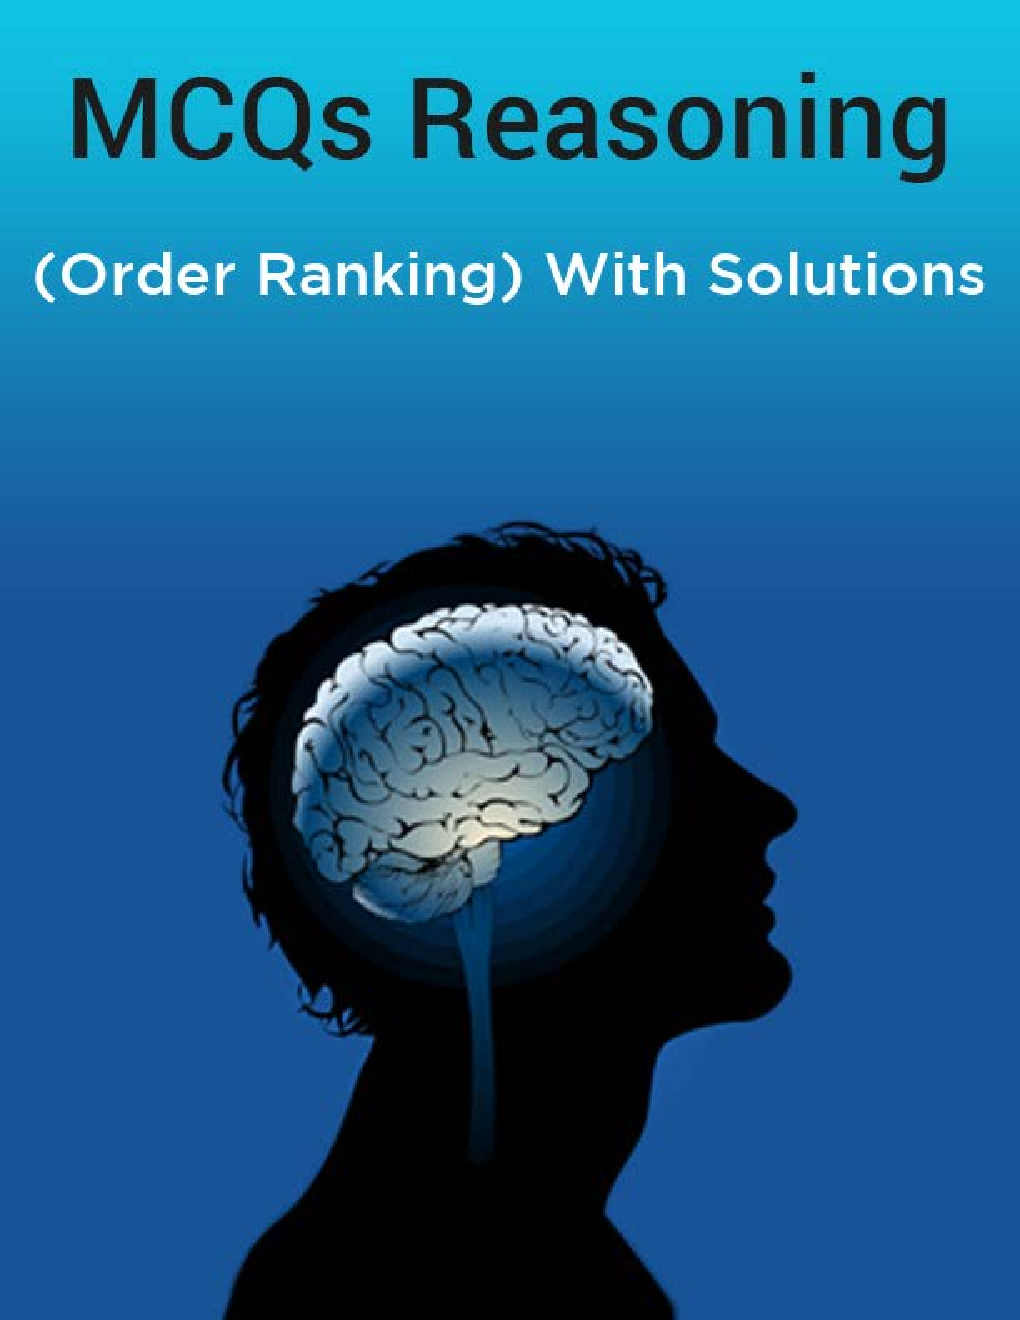 MCQs Reasoning (Order Ranking) With Solutions - Page 1